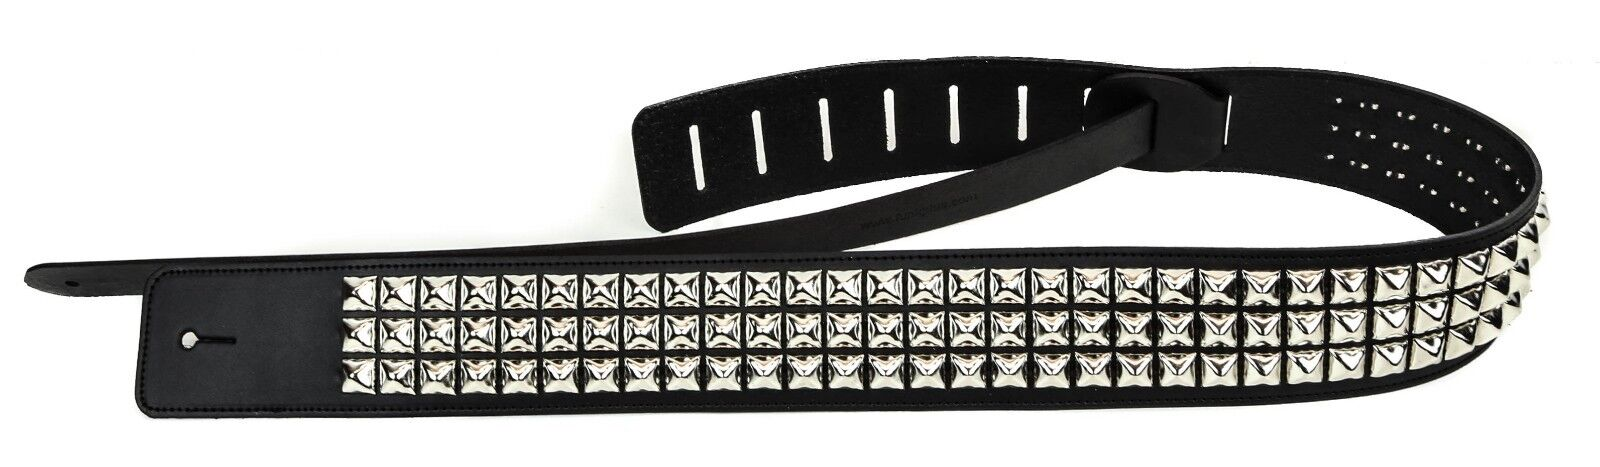 Studded Punk Rock Guitar Strap Genuine Leather Punk Goth Met